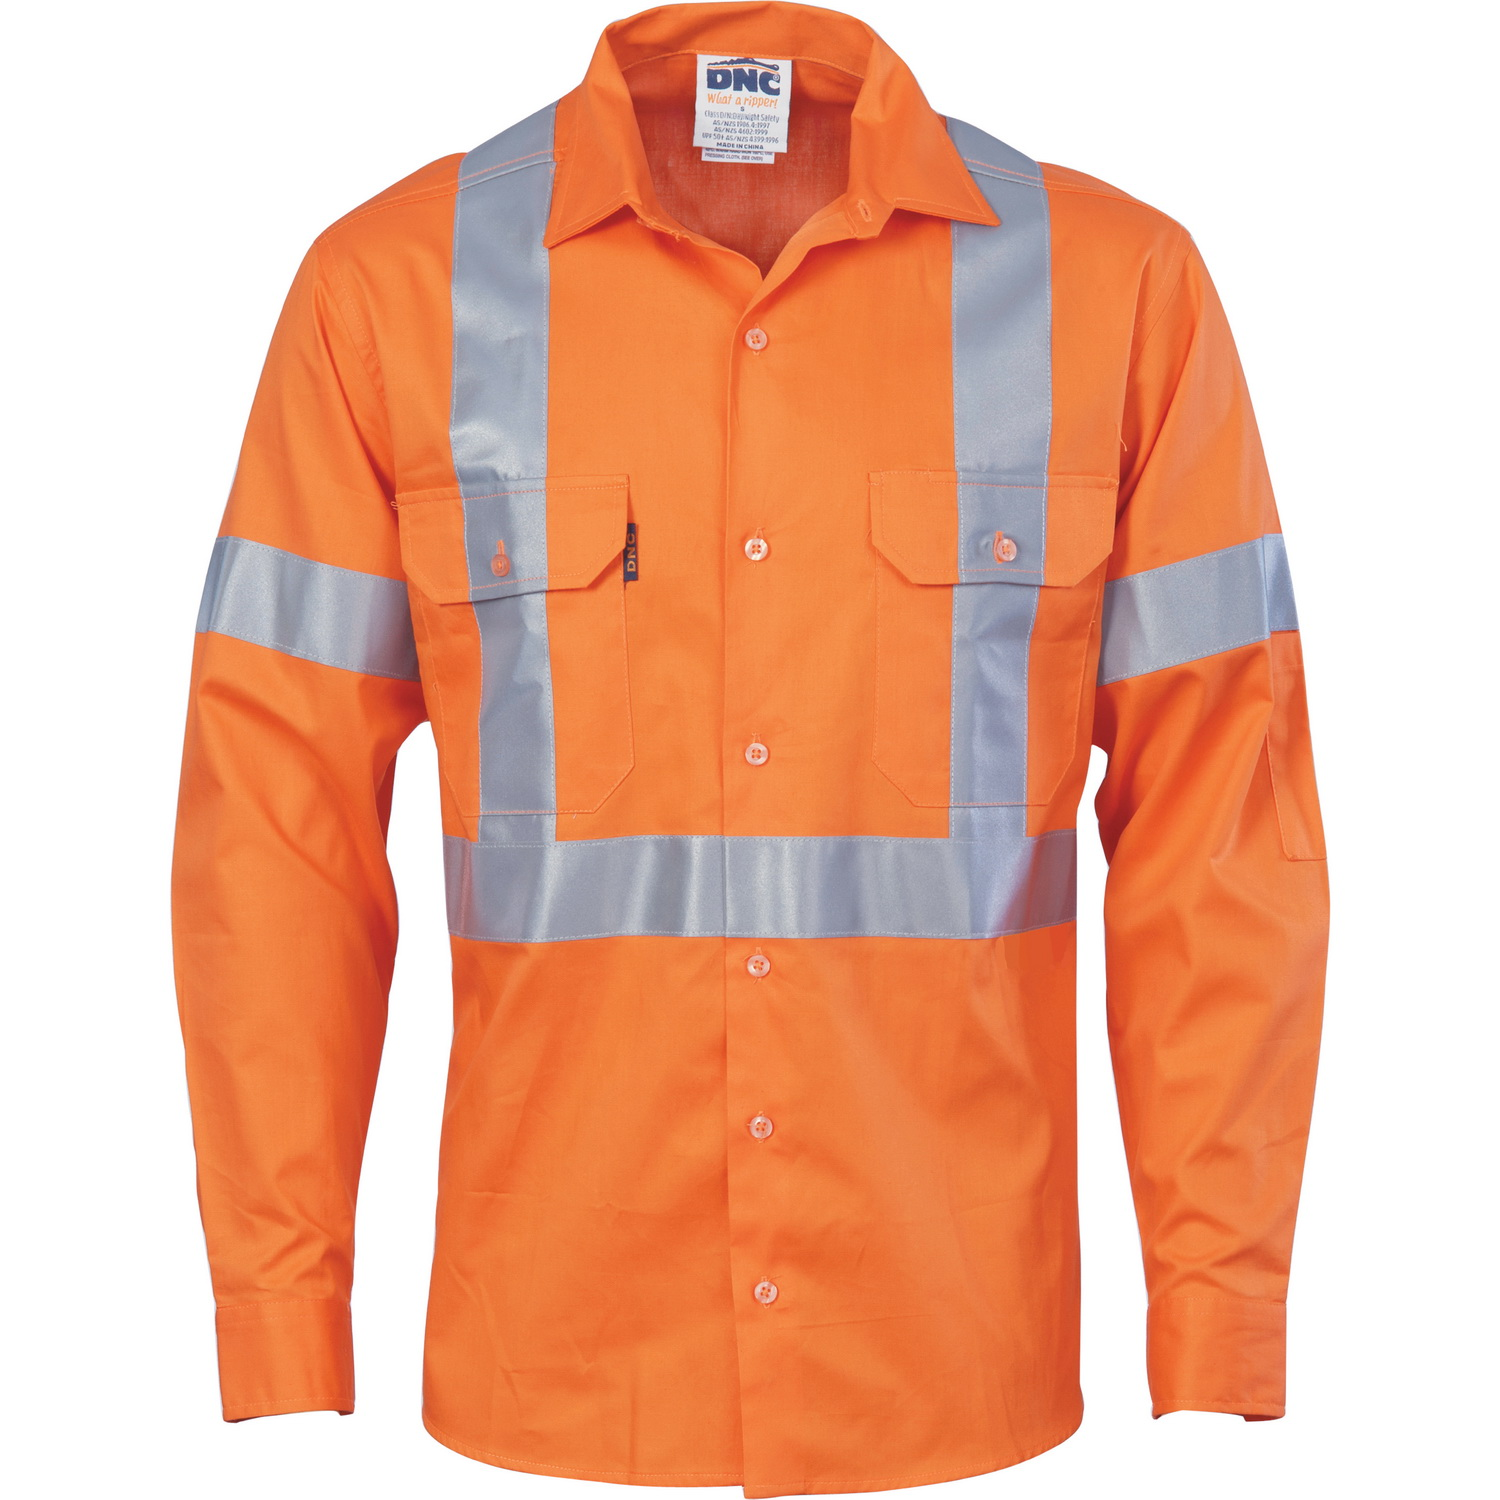 Product Display Dnc Workwear Workwear Work Wear Clothing